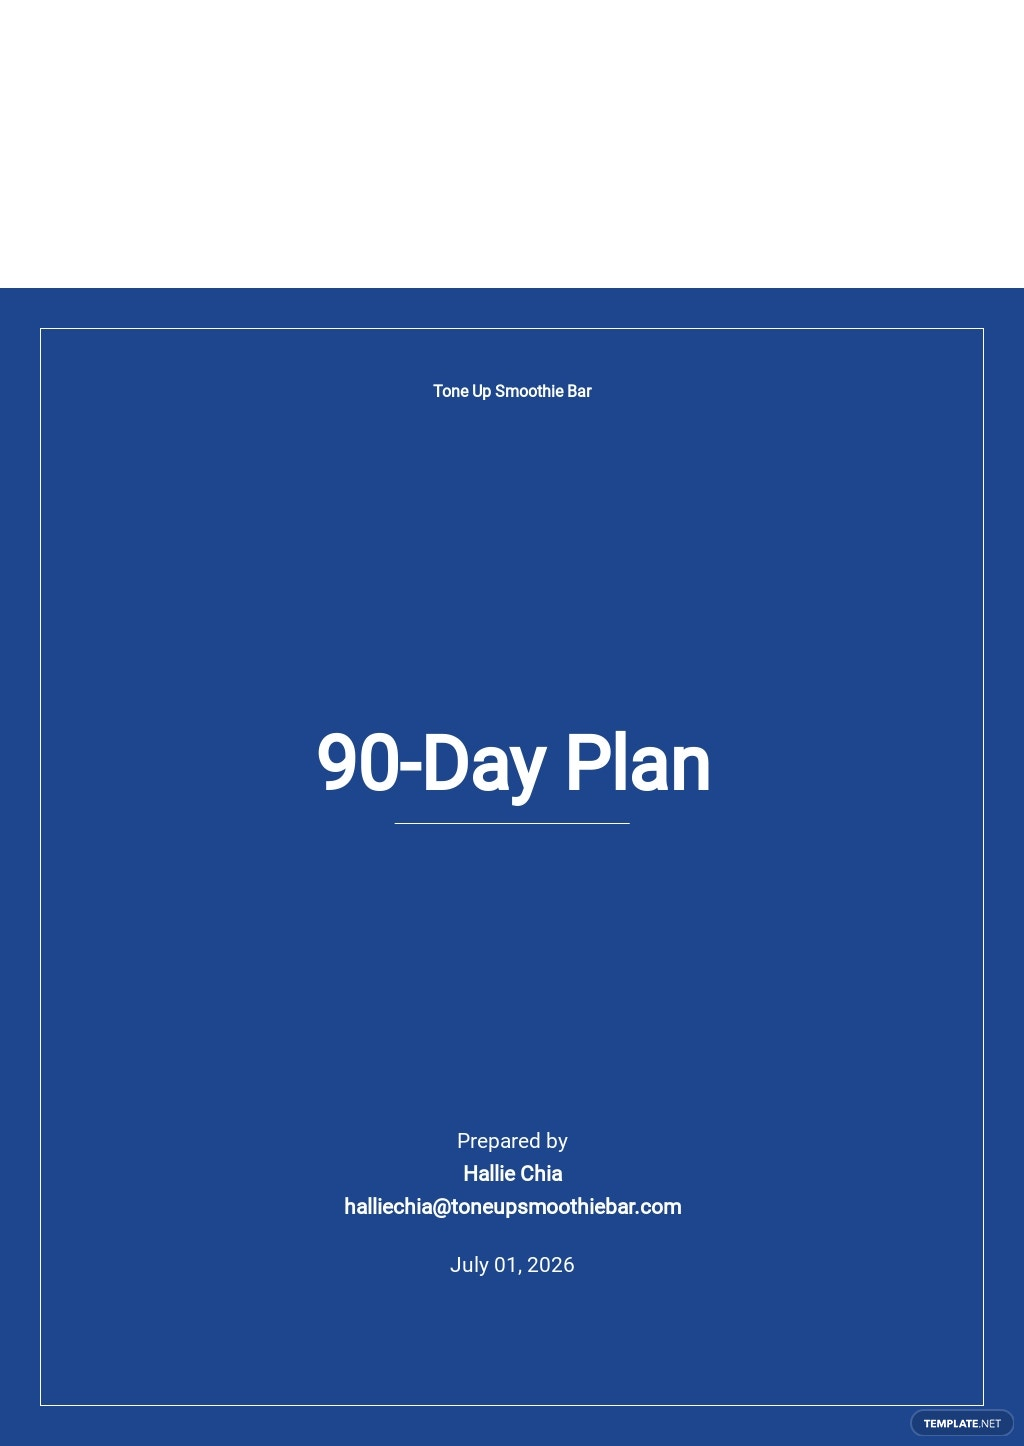 90-Day Plan Template